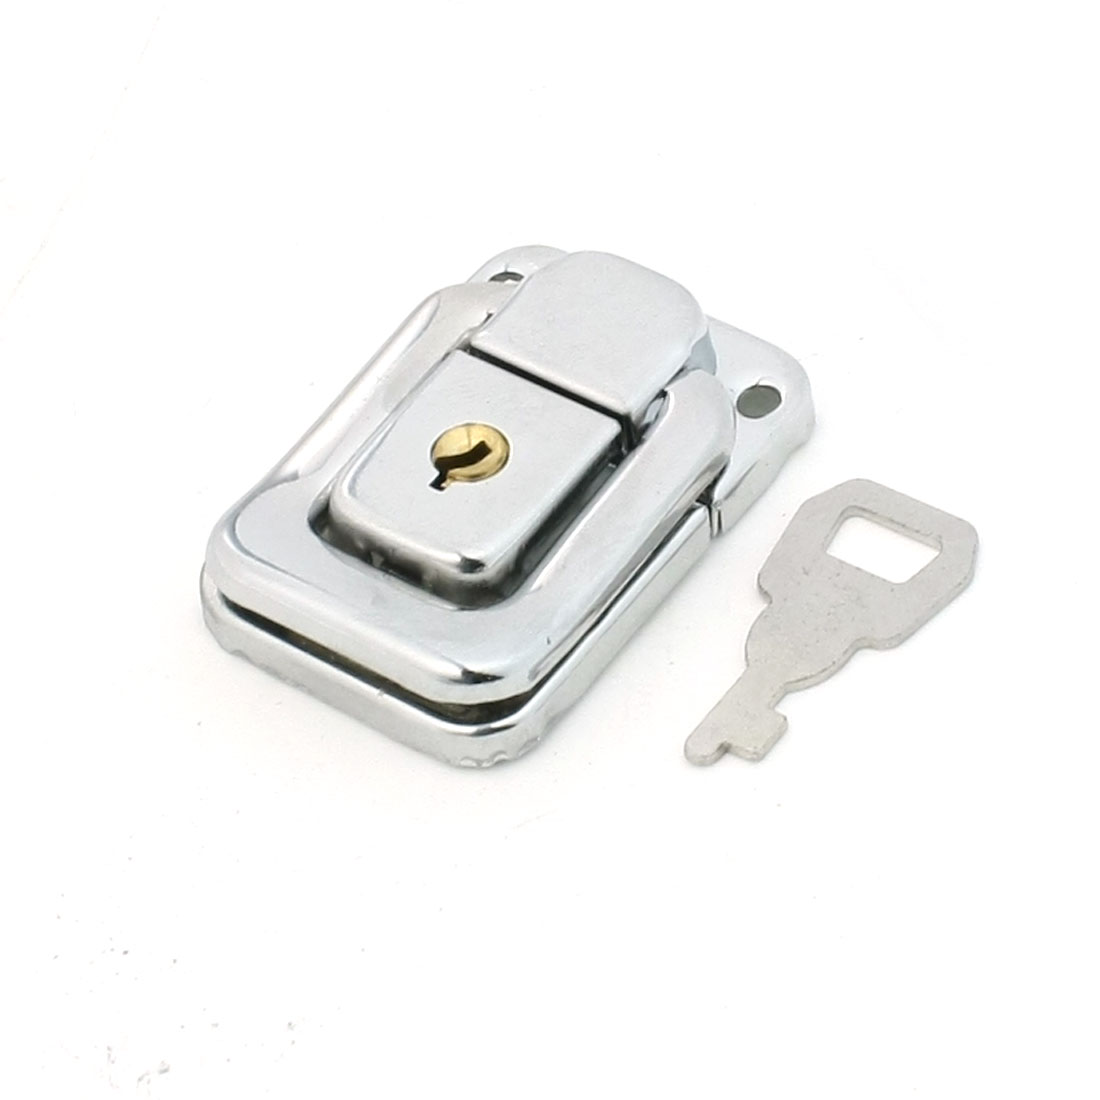 4.8cmx3.2cm Silver Tone Metal Chest Boxes Case Toggle Catch Latch